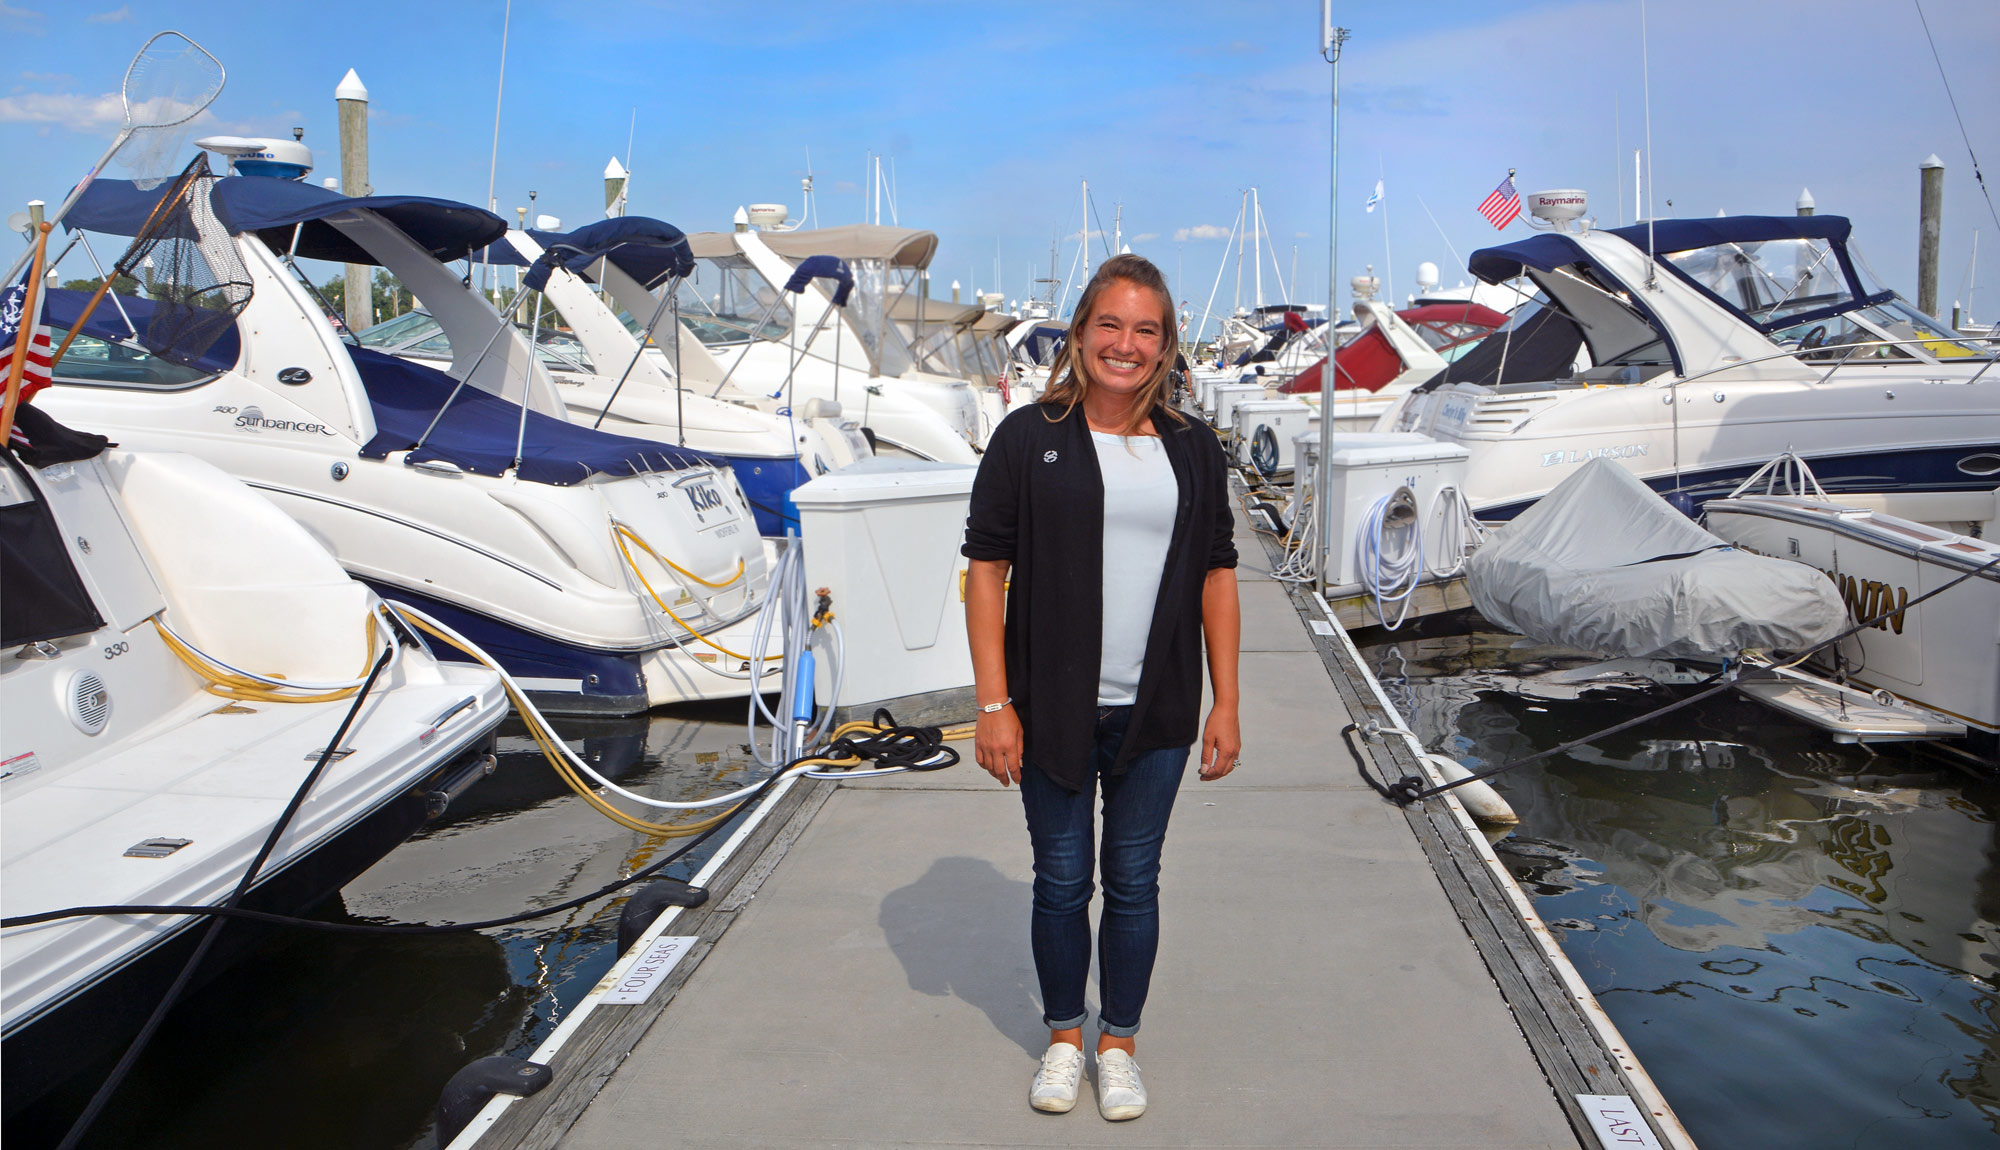 Alyssa Linkamper, 2015 MTTI Marine Service Technician Graduate, at Safe Harbor Marinas in Warwick, RI